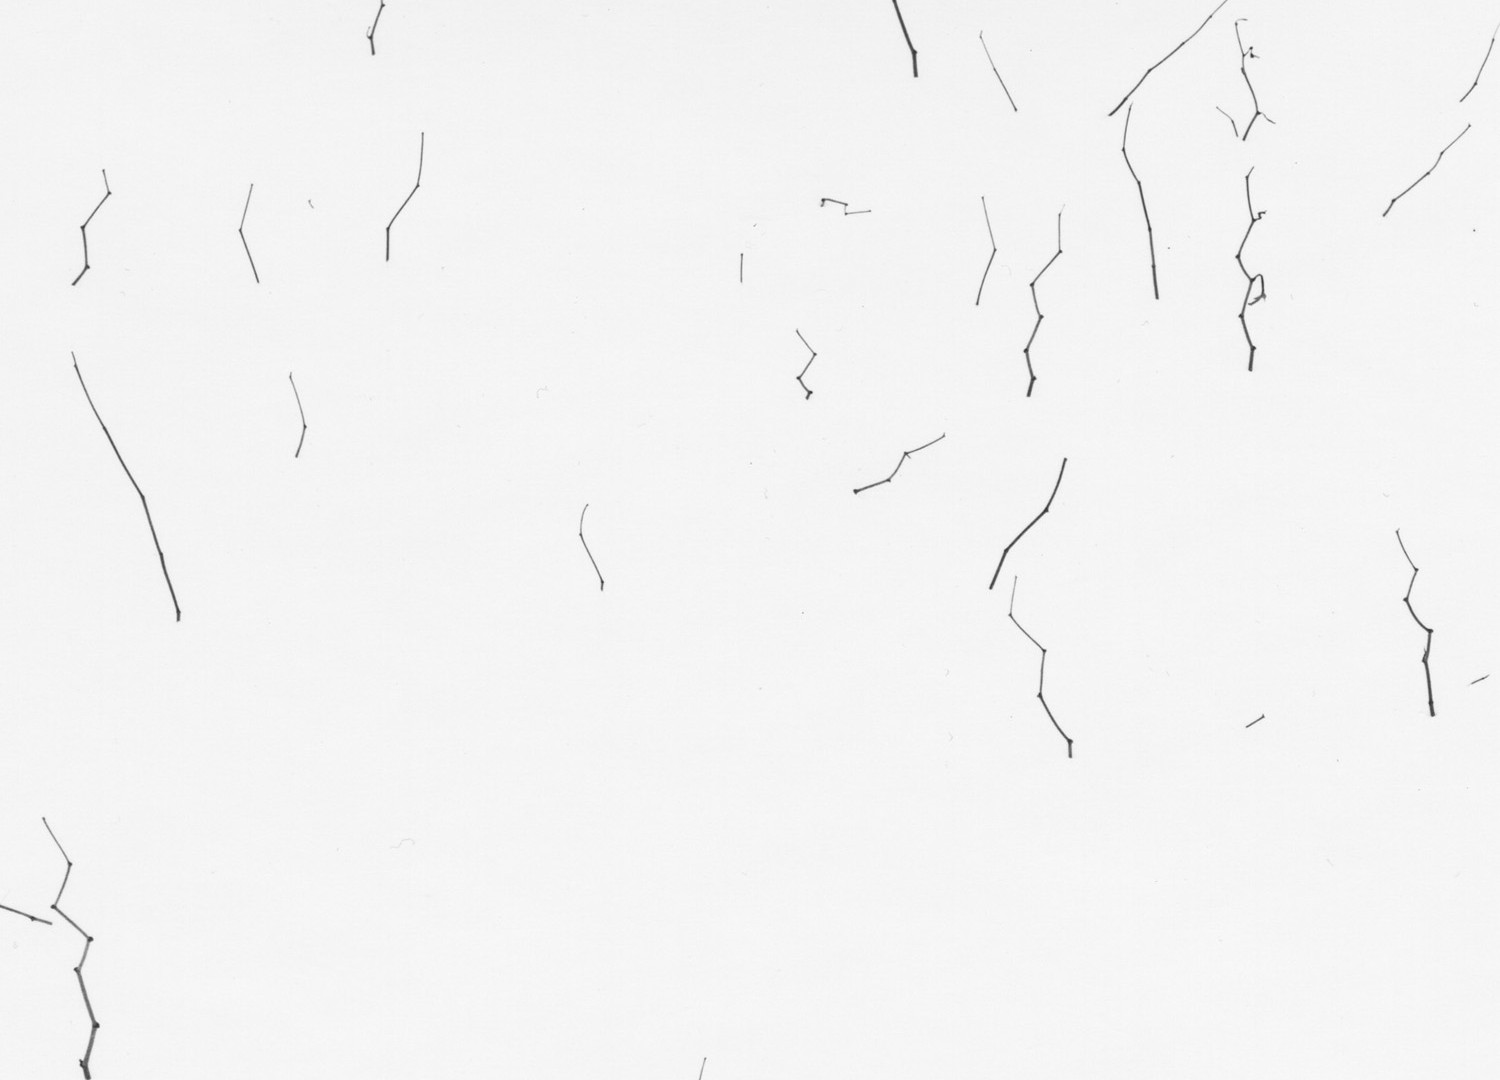 Harry Callahan, Weeds in Snow, Providence, c. 1964